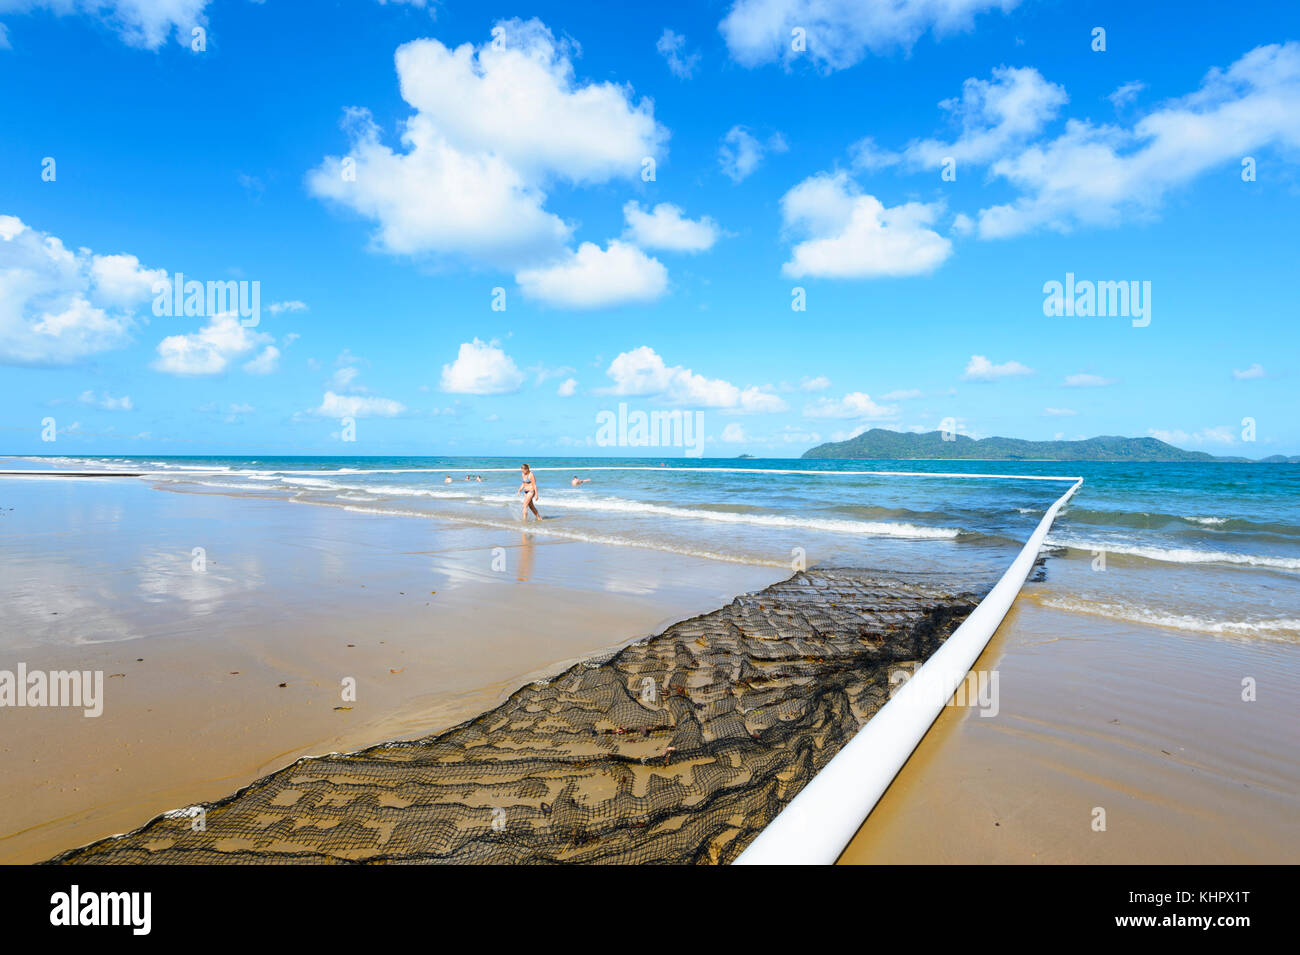 Protected swimming area or Stinger Net at South Mission Beach, Far North Queensland, FNQ, Australia - Stock Image